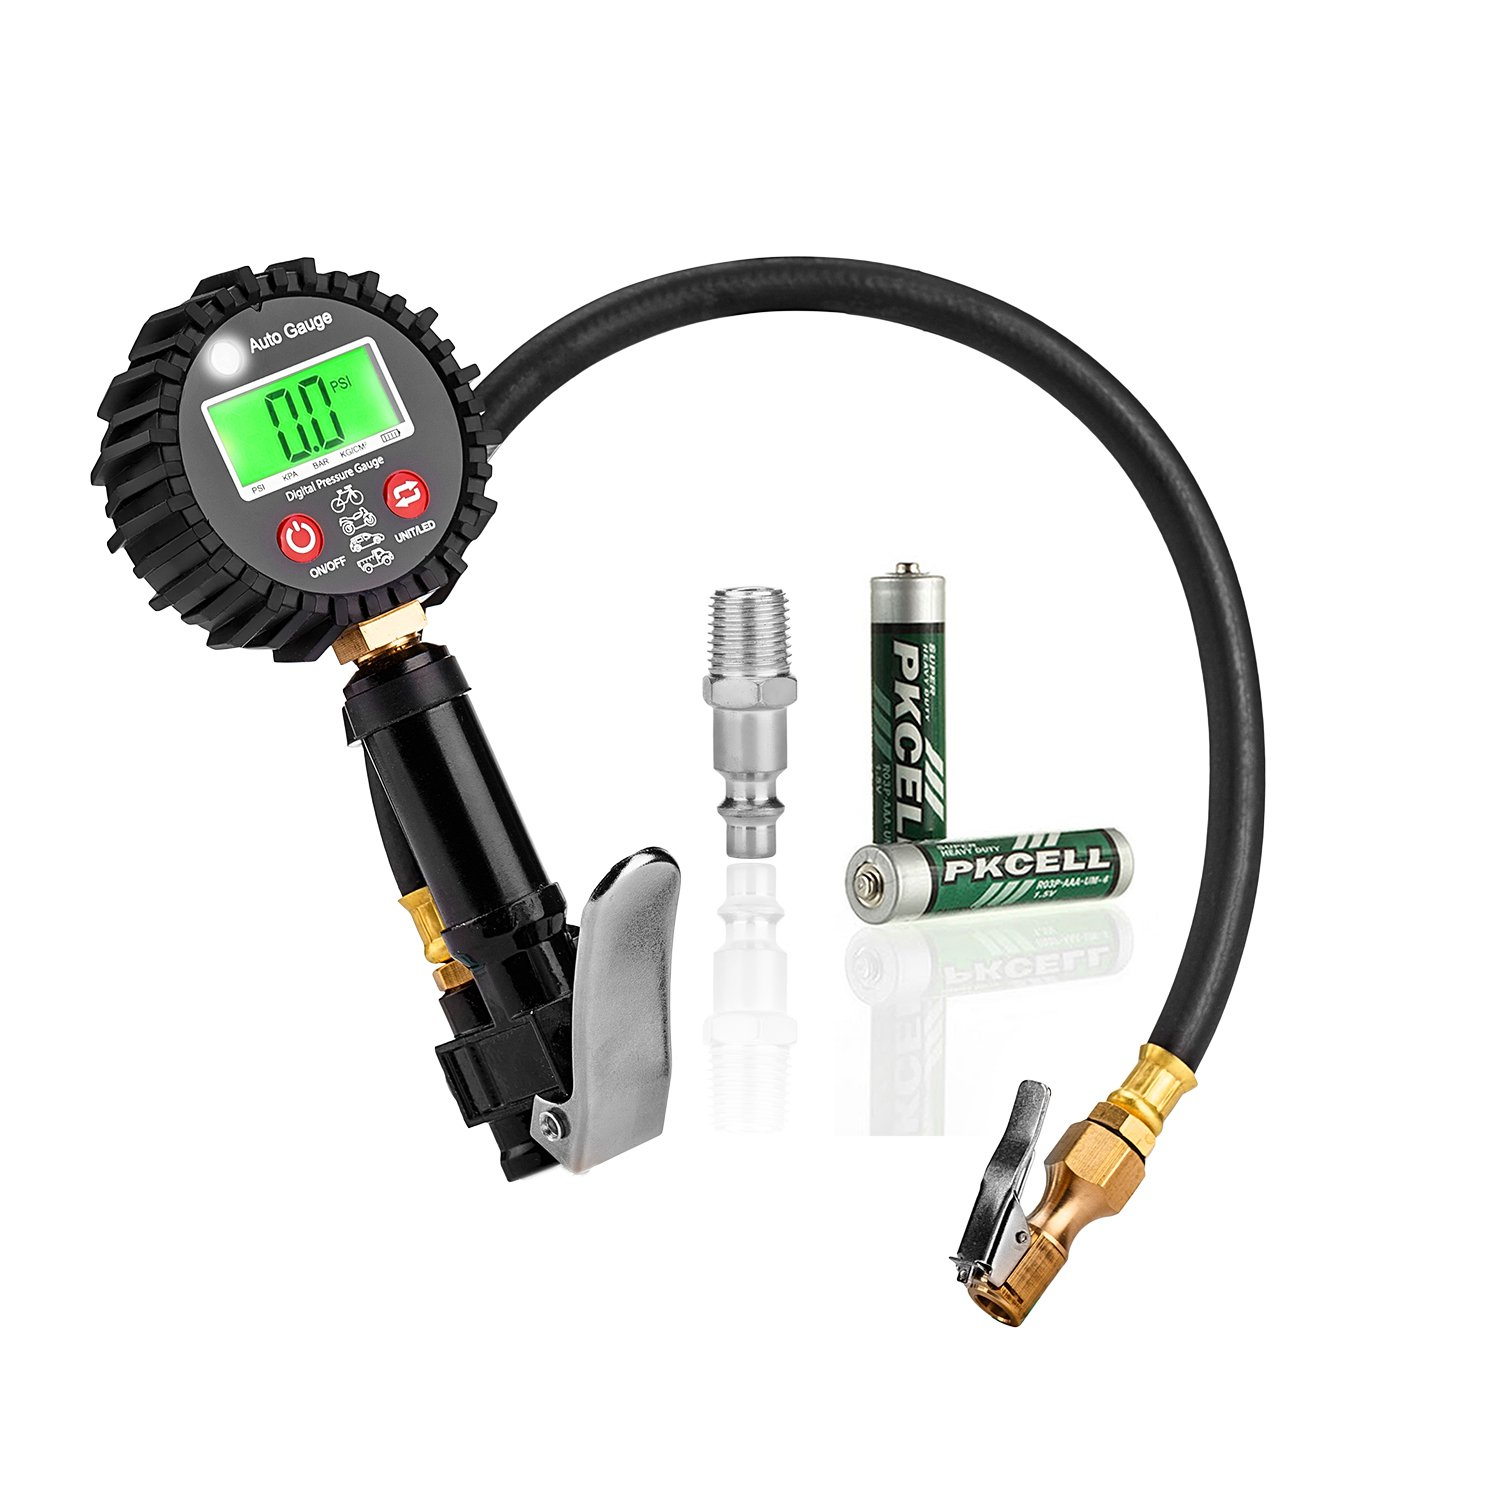 Utaly 200 PSI Digital Tire Pressure Gauge Inflator with Hose and Quick Connect Plug Gauge Air Compressor Tool for Car Bike Truck Motorcycle